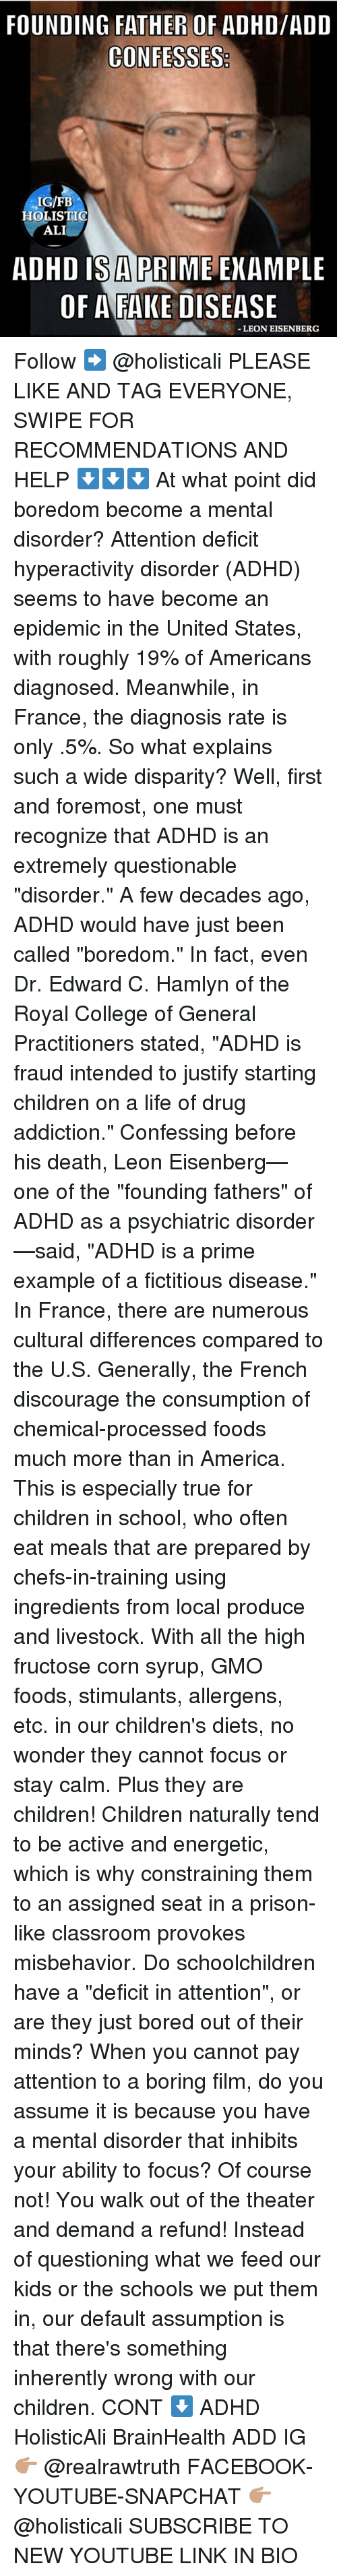 """Oftenly: FOUNDING FATHER OF ADHD/ADD  IG/FB  HOLISTIO  ALI  ADHD IS A PRIME ENAMPLE  OF AFAKE DISEASE  LEON EISENBERG Follow ➡️ @holisticali PLEASE LIKE AND TAG EVERYONE, SWIPE FOR RECOMMENDATIONS AND HELP ⬇️⬇️⬇️ At what point did boredom become a mental disorder? Attention deficit hyperactivity disorder (ADHD) seems to have become an epidemic in the United States, with roughly 19% of Americans diagnosed. Meanwhile, in France, the diagnosis rate is only .5%. So what explains such a wide disparity? Well, first and foremost, one must recognize that ADHD is an extremely questionable """"disorder."""" A few decades ago, ADHD would have just been called """"boredom."""" In fact, even Dr. Edward C. Hamlyn of the Royal College of General Practitioners stated, """"ADHD is fraud intended to justify starting children on a life of drug addiction."""" Confessing before his death, Leon Eisenberg—one of the """"founding fathers"""" of ADHD as a psychiatric disorder—said, """"ADHD is a prime example of a fictitious disease."""" In France, there are numerous cultural differences compared to the U.S. Generally, the French discourage the consumption of chemical-processed foods much more than in America. This is especially true for children in school, who often eat meals that are prepared by chefs-in-training using ingredients from local produce and livestock. With all the high fructose corn syrup, GMO foods, stimulants, allergens, etc. in our children's diets, no wonder they cannot focus or stay calm. Plus they are children! Children naturally tend to be active and energetic, which is why constraining them to an assigned seat in a prison-like classroom provokes misbehavior. Do schoolchildren have a """"deficit in attention"""", or are they just bored out of their minds? When you cannot pay attention to a boring film, do you assume it is because you have a mental disorder that inhibits your ability to focus? Of course not! You walk out of the theater and demand a refund! Instead of questioning what we feed our kids or t"""